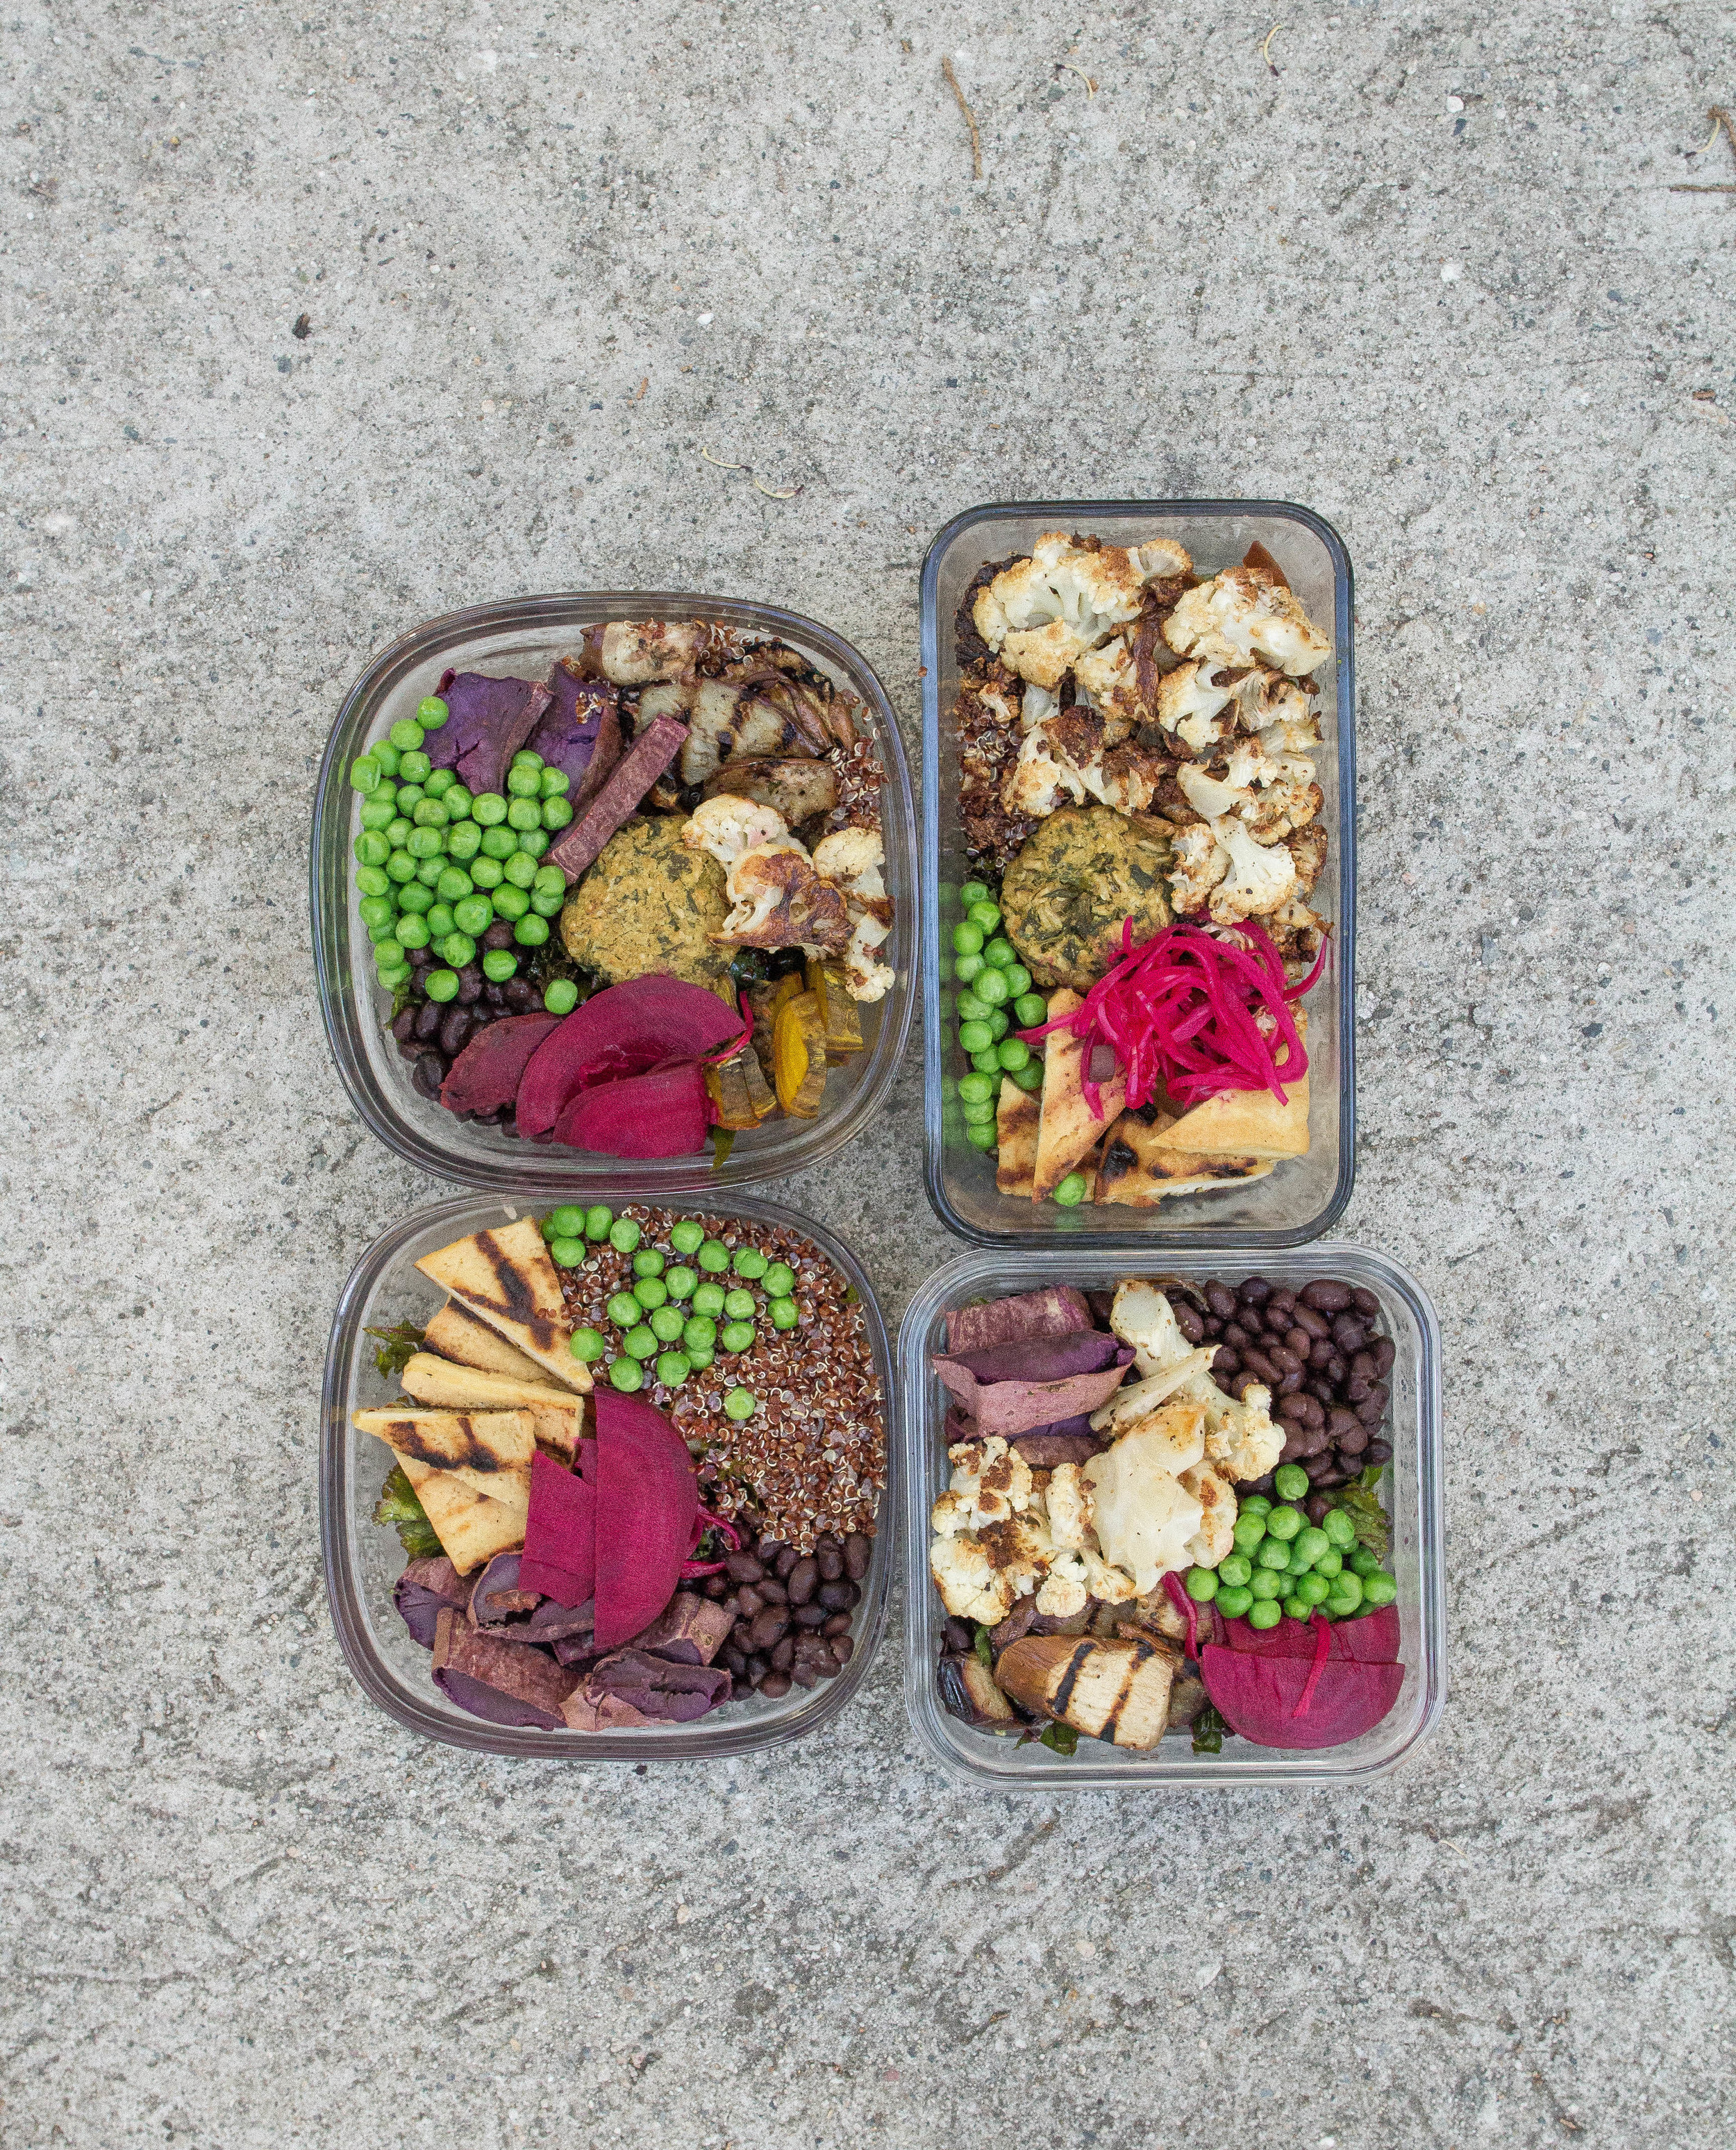 Assorted Salads for the week: roasted purple sweet potato, roasted cauliflower, falafel, black beans, quinoa, peas, grilled eggplant, roasted beets, tofu, massaged kale underneath (kale is a great meal prep trick- it's super hearty and actually tastes  better the longer you let it soak.